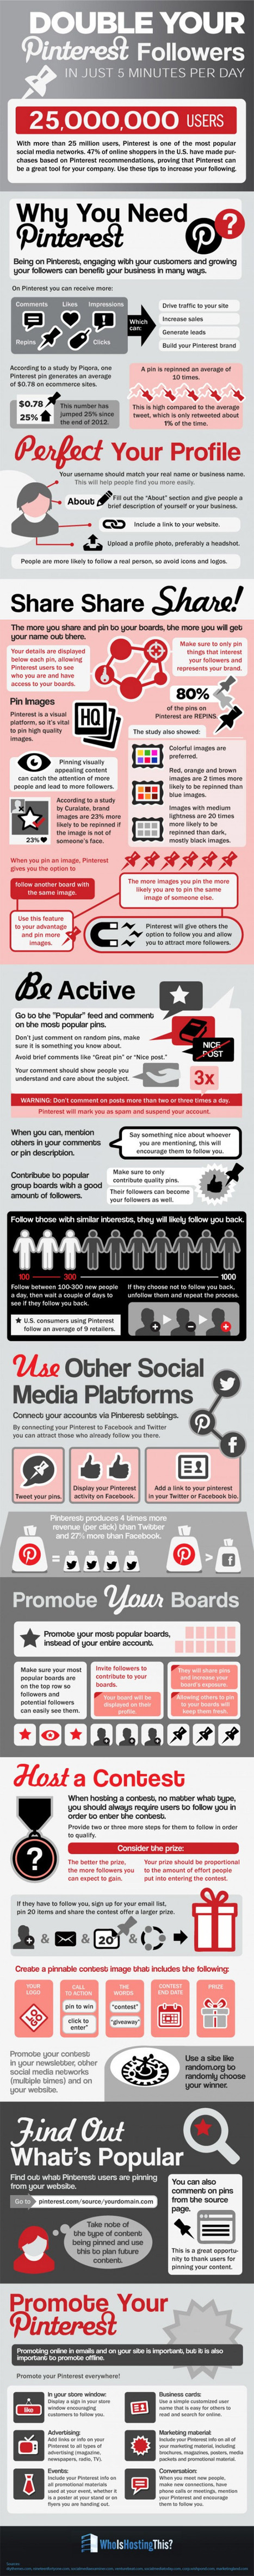 How You Can Get More Pinterest Followers (Infographic) | Commentrix | Scoop.it